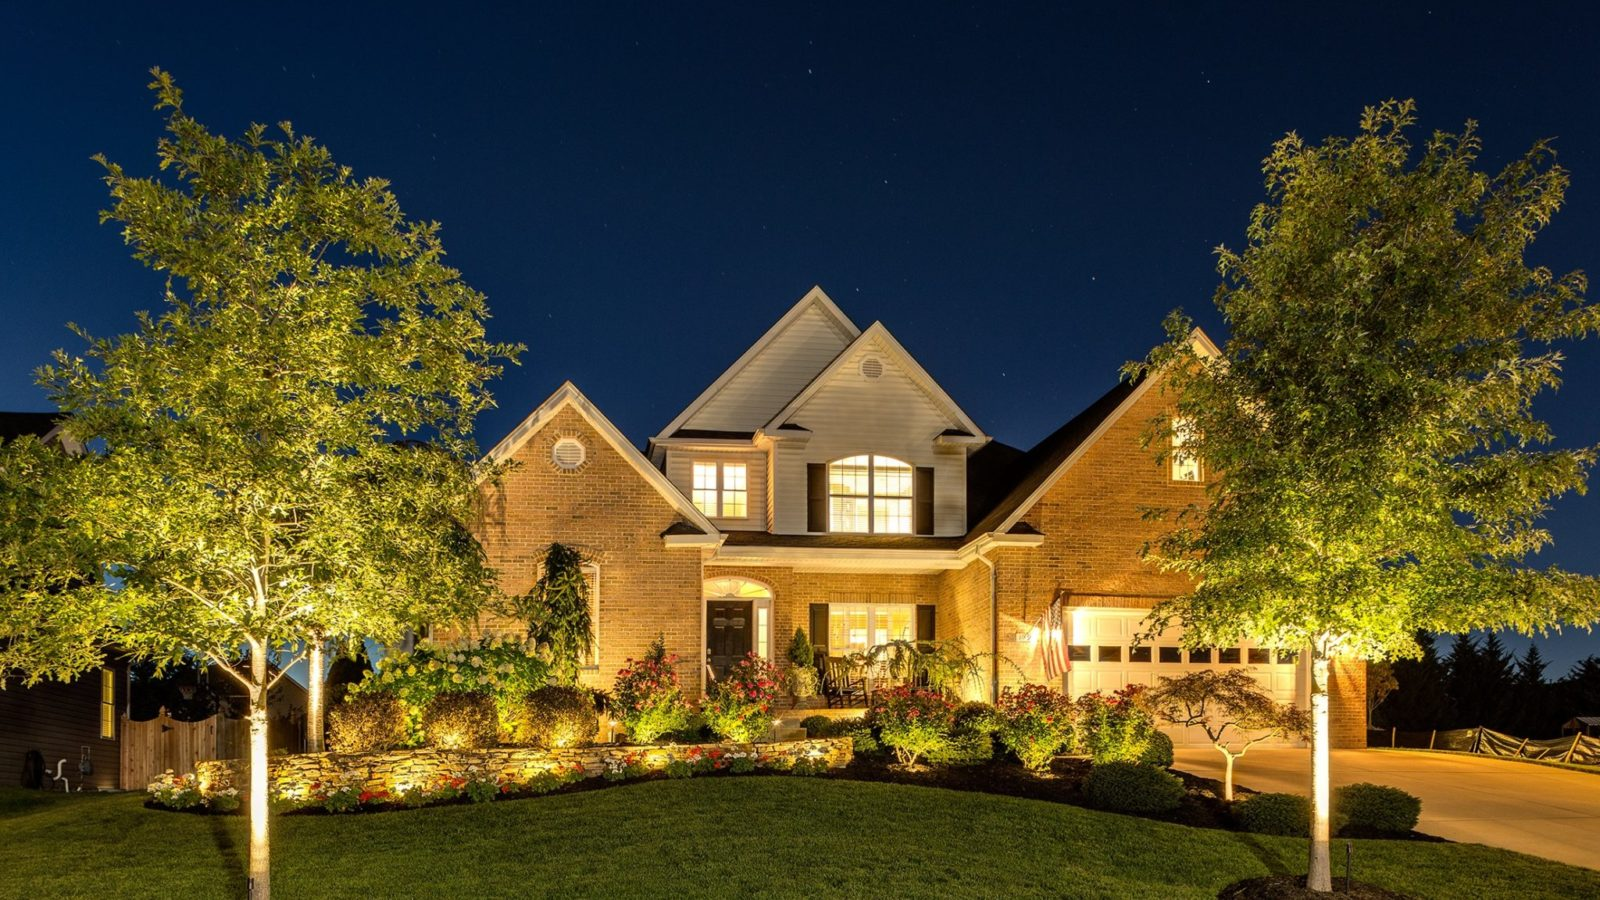 Landscape Lighting, holiday home security